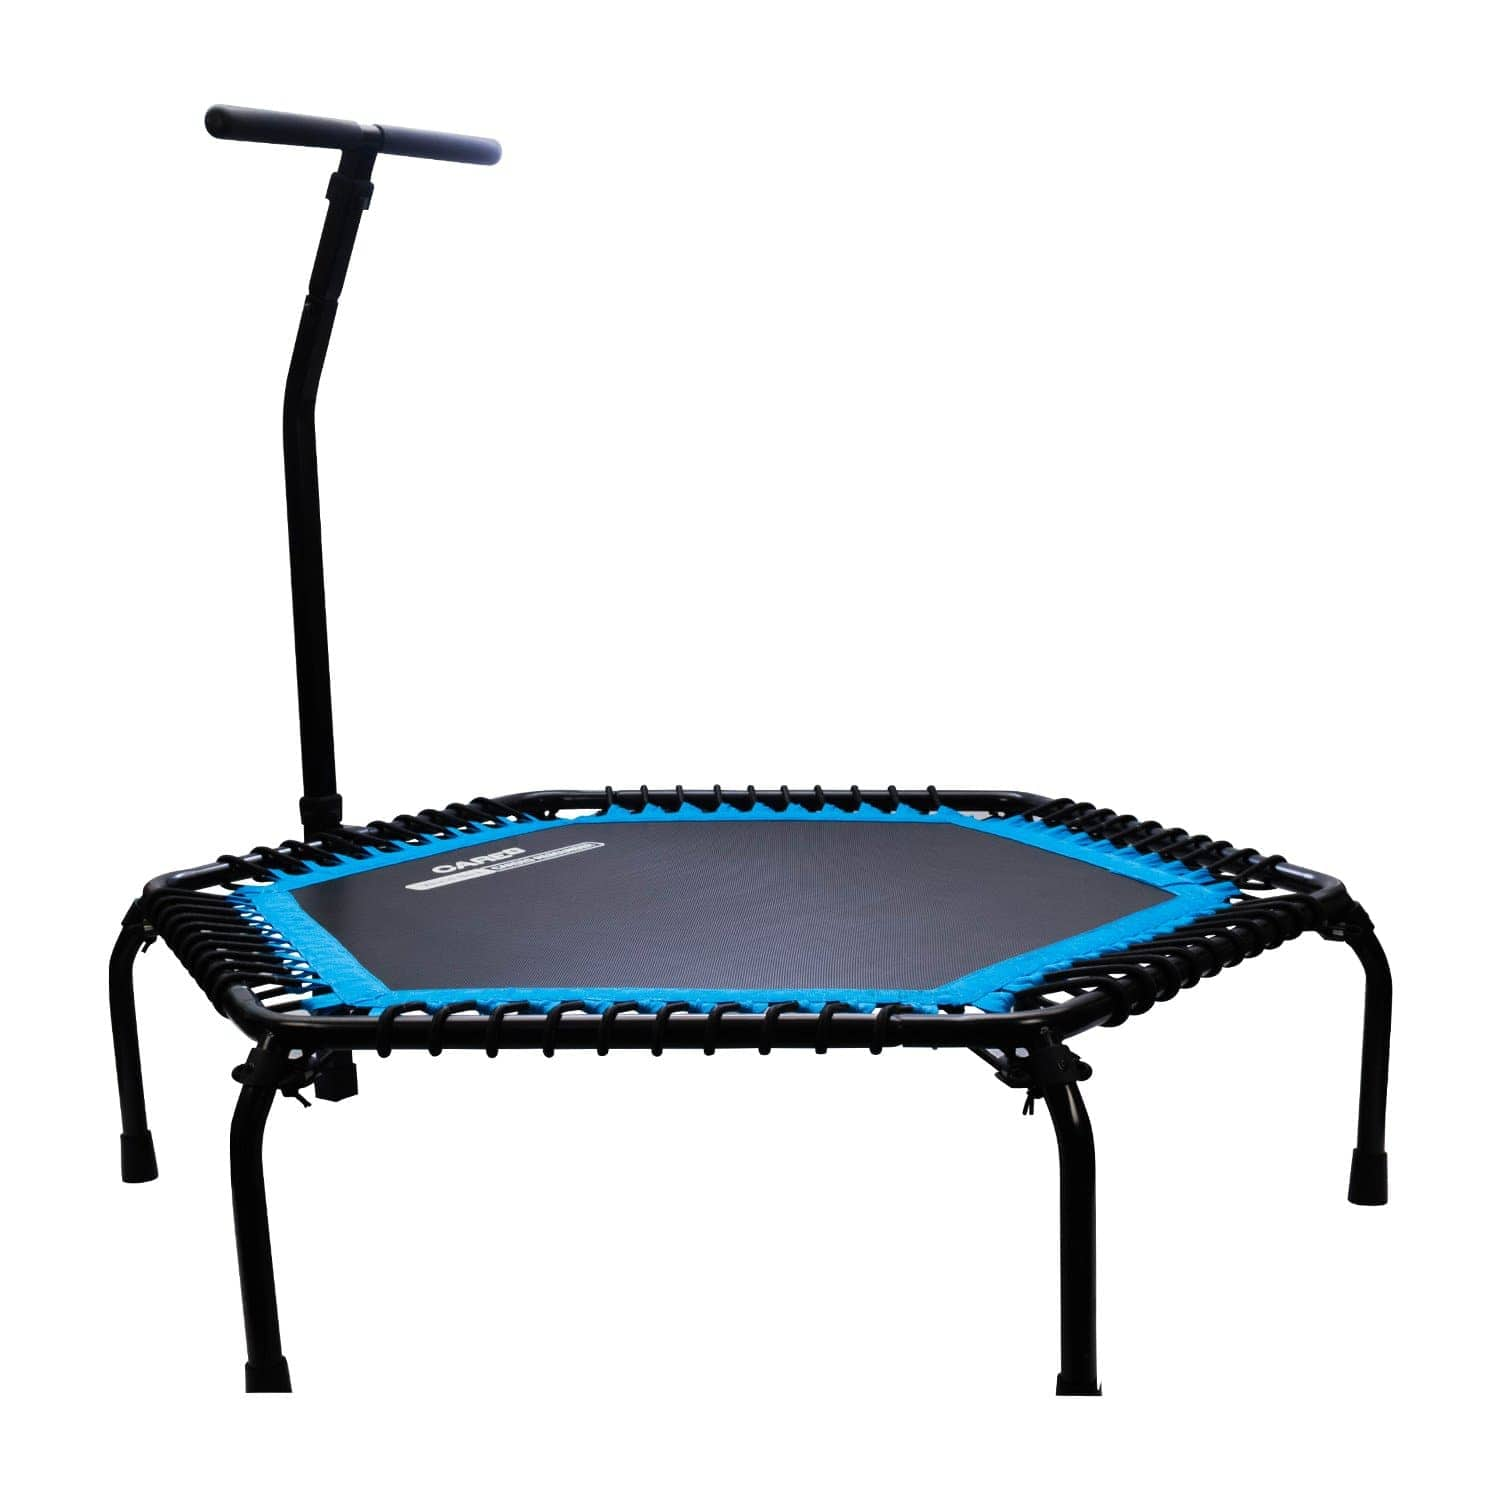 Fitness & Athletics Hexagonal Trampoline 50""